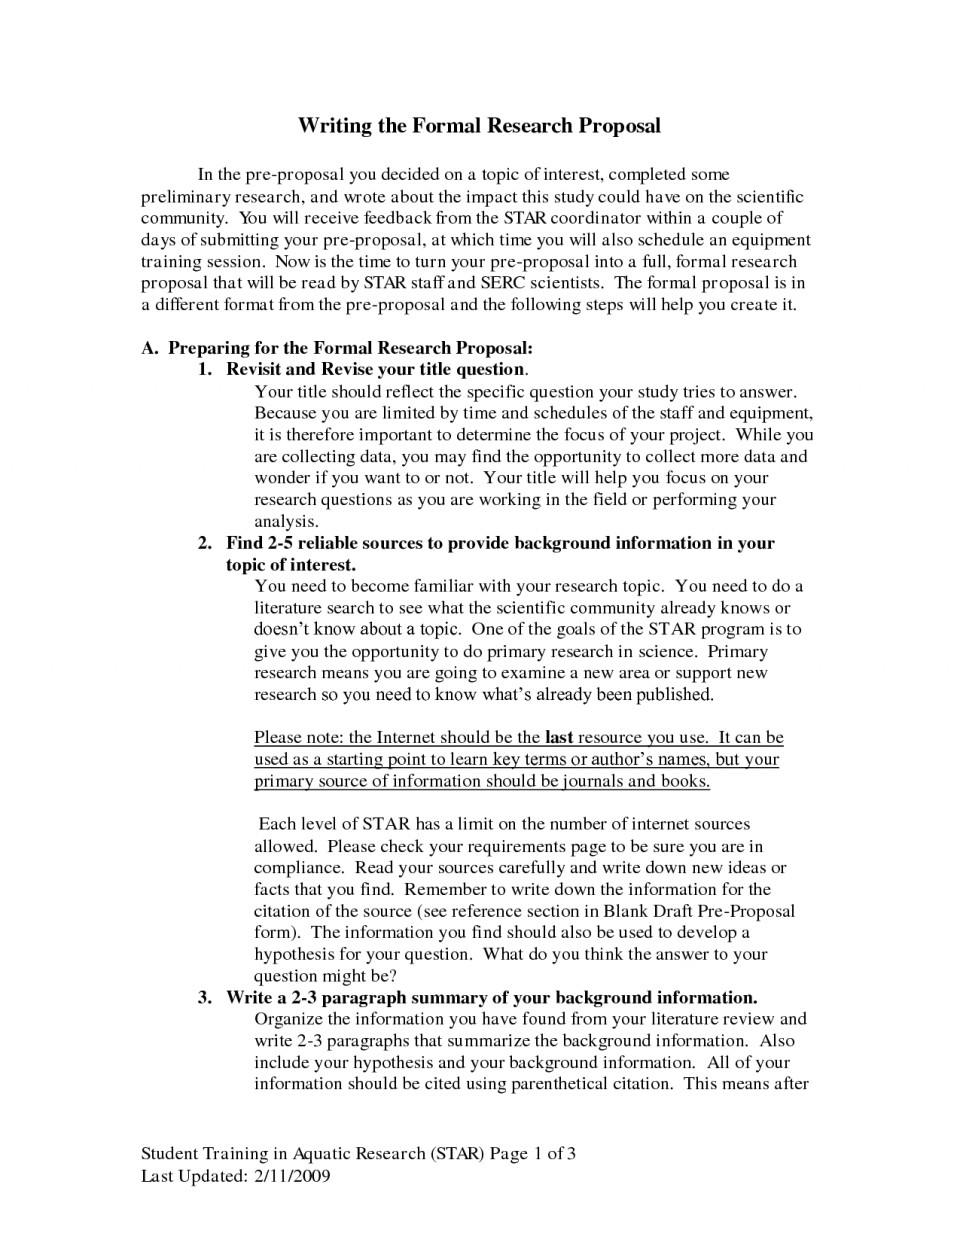 003 Apa Research Paper Proposal Sample Style 616954 Marvelous Example 960